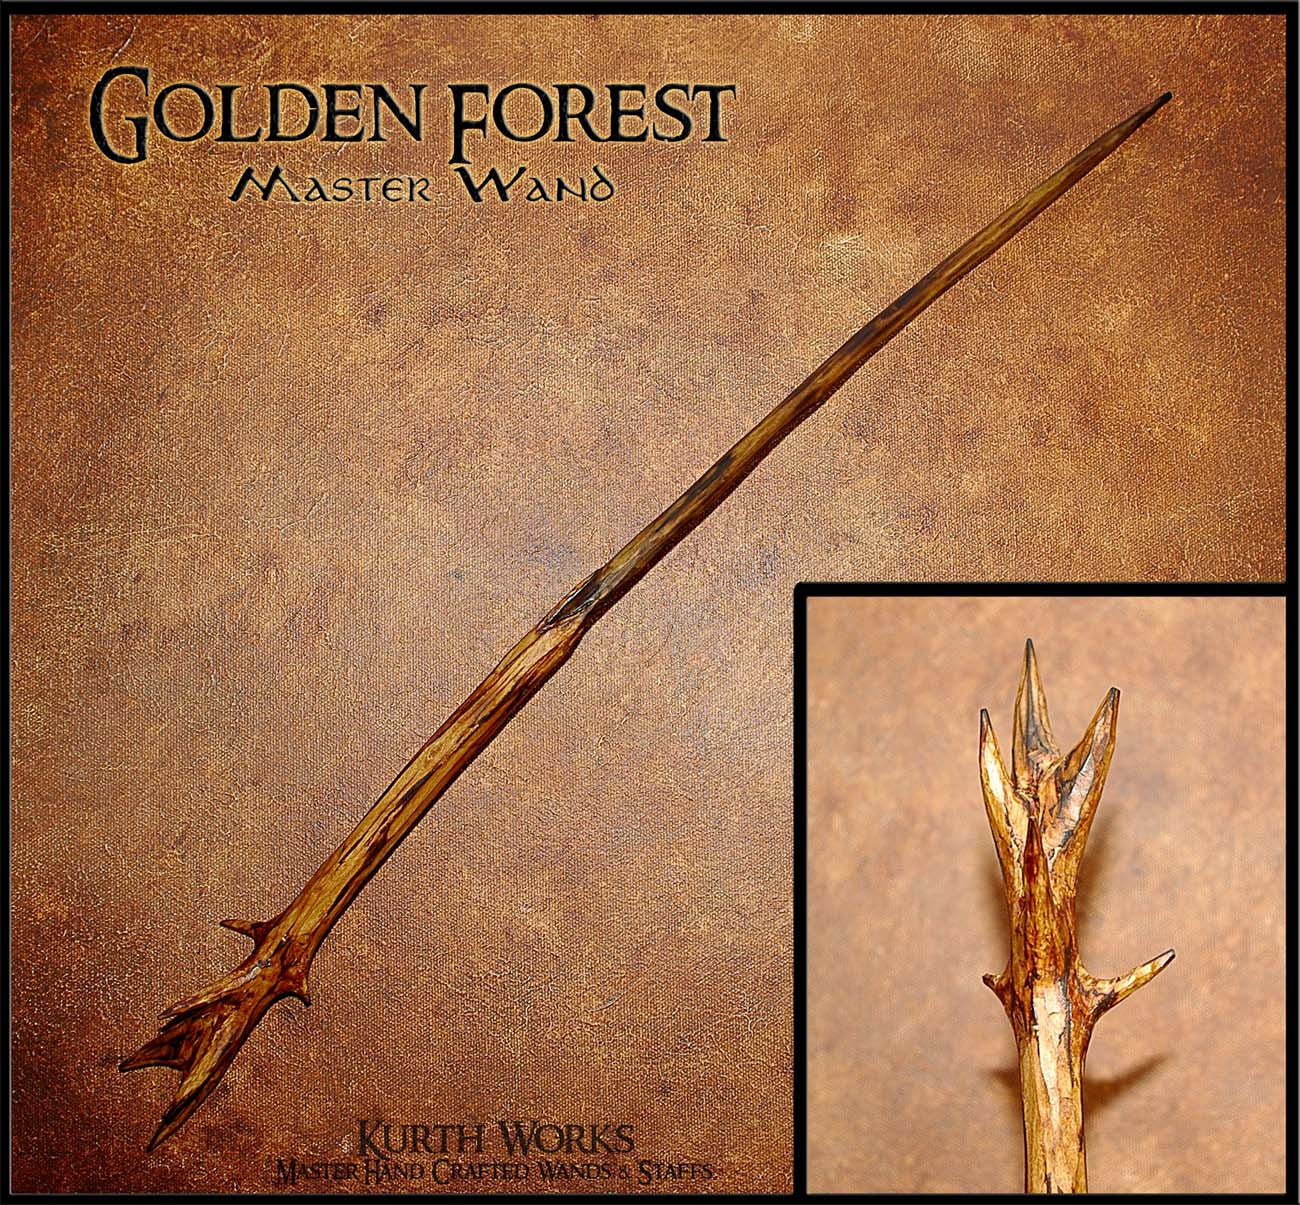 Golden Forest Wizard Magic Wand 9